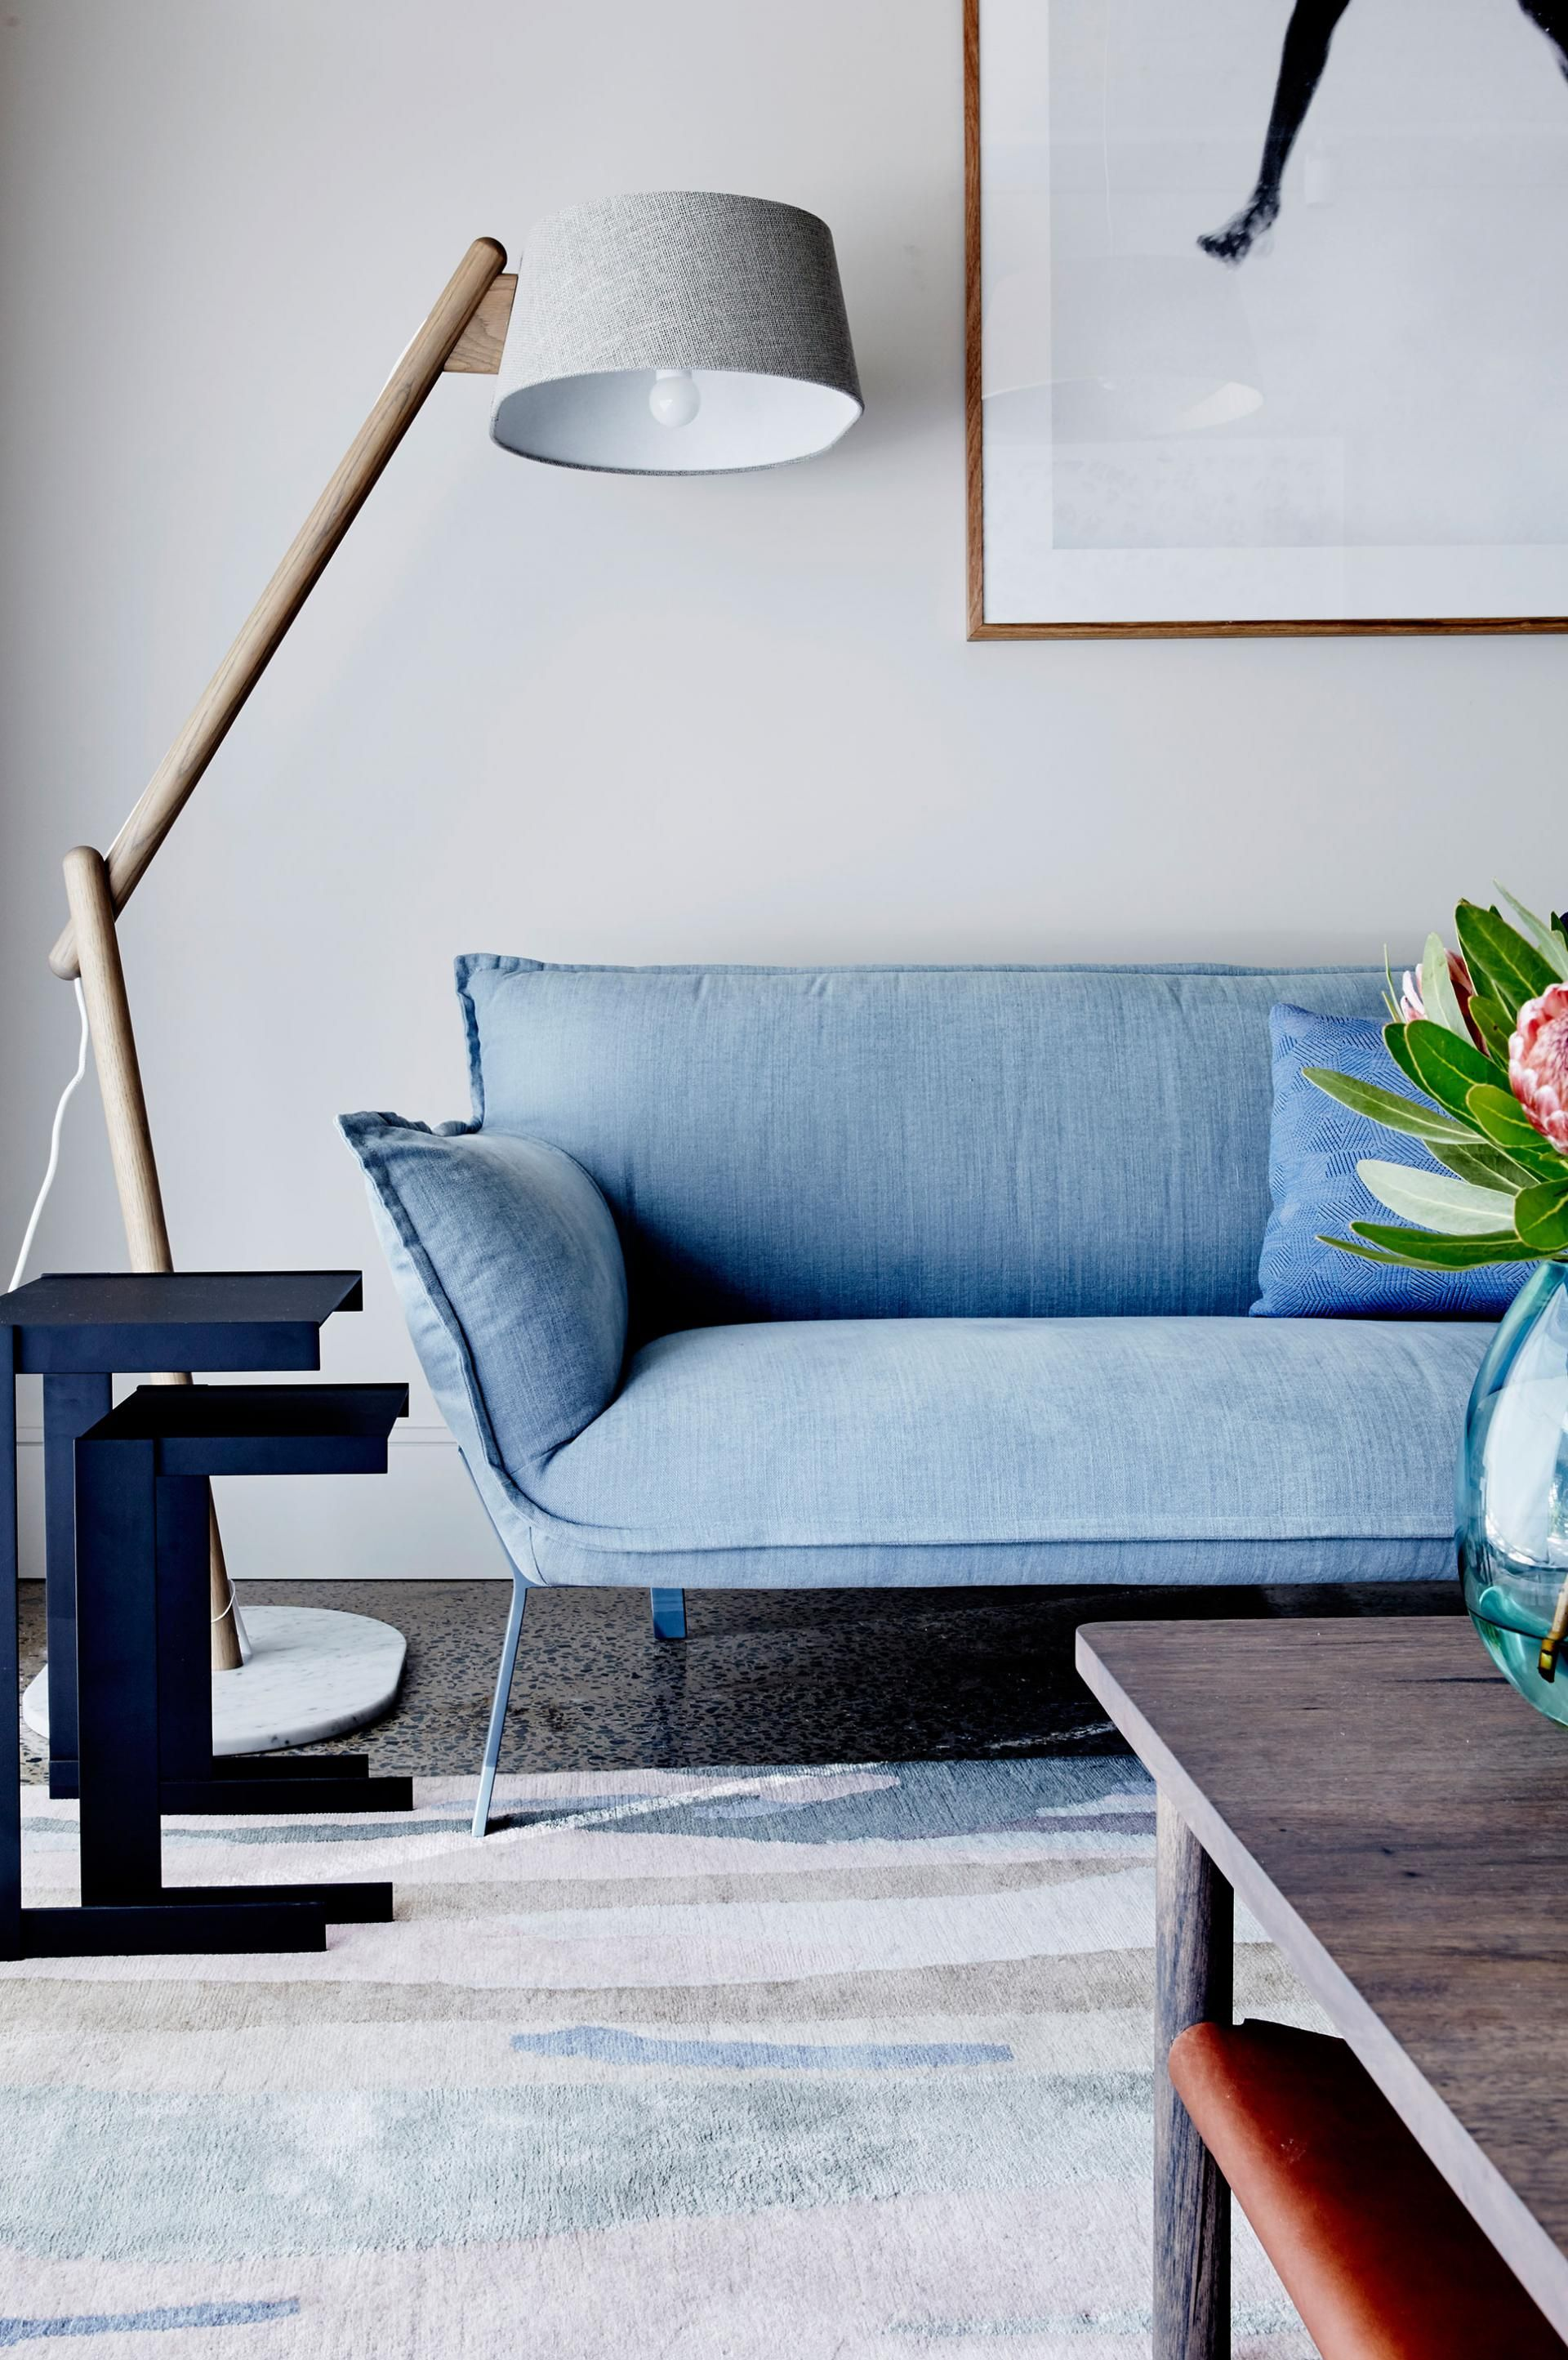 A New Jardanfurniture Store Has Opened In Brisbane Beautiful Fascinating Blue Sofa Living Room Design Inspiration